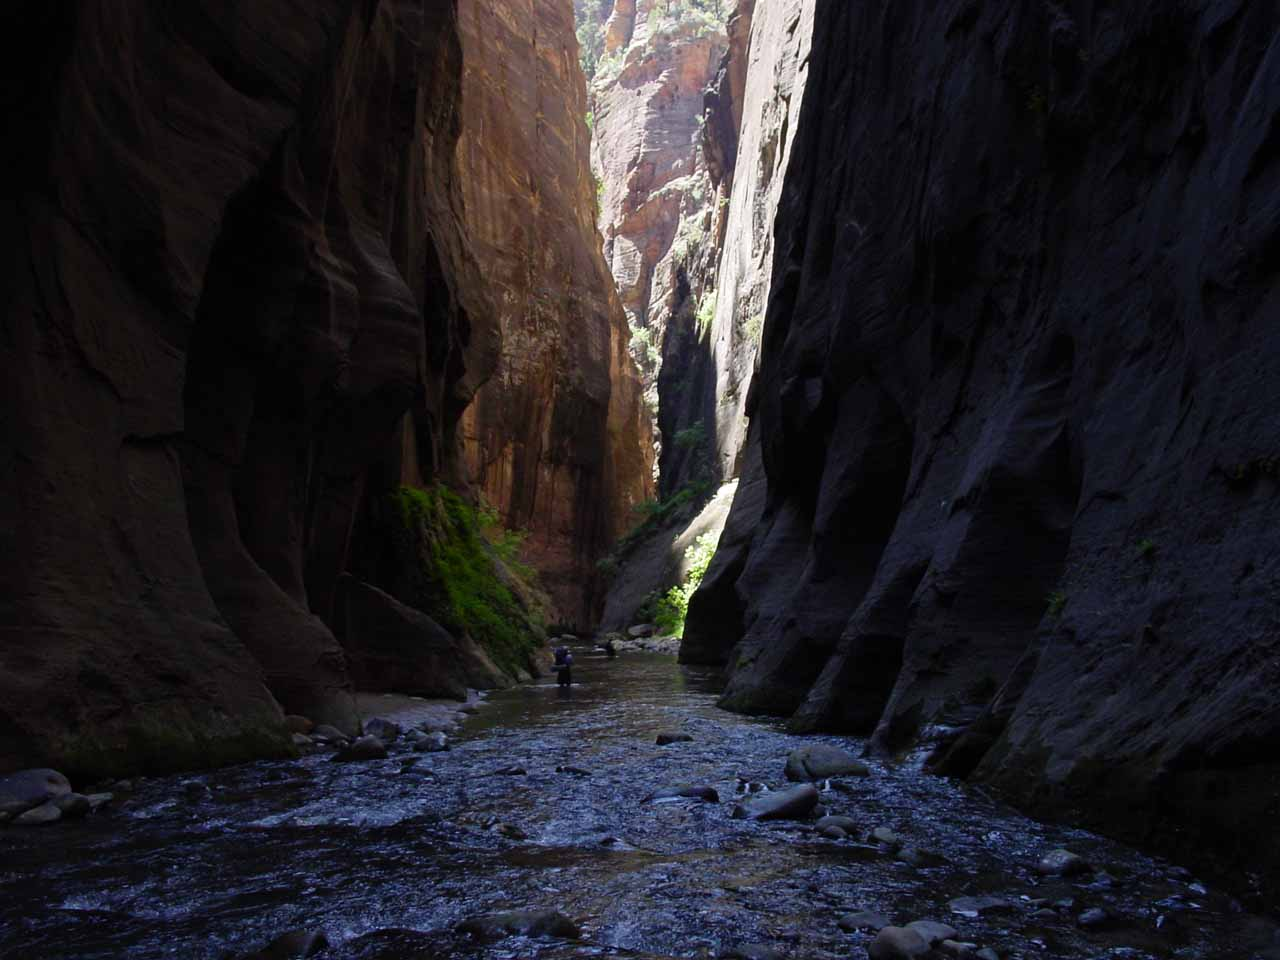 At this point of the hike, we were able to leave the shadowy depths of the narrowest part of the Lower Narrows and enter the more lit sections of the gorge